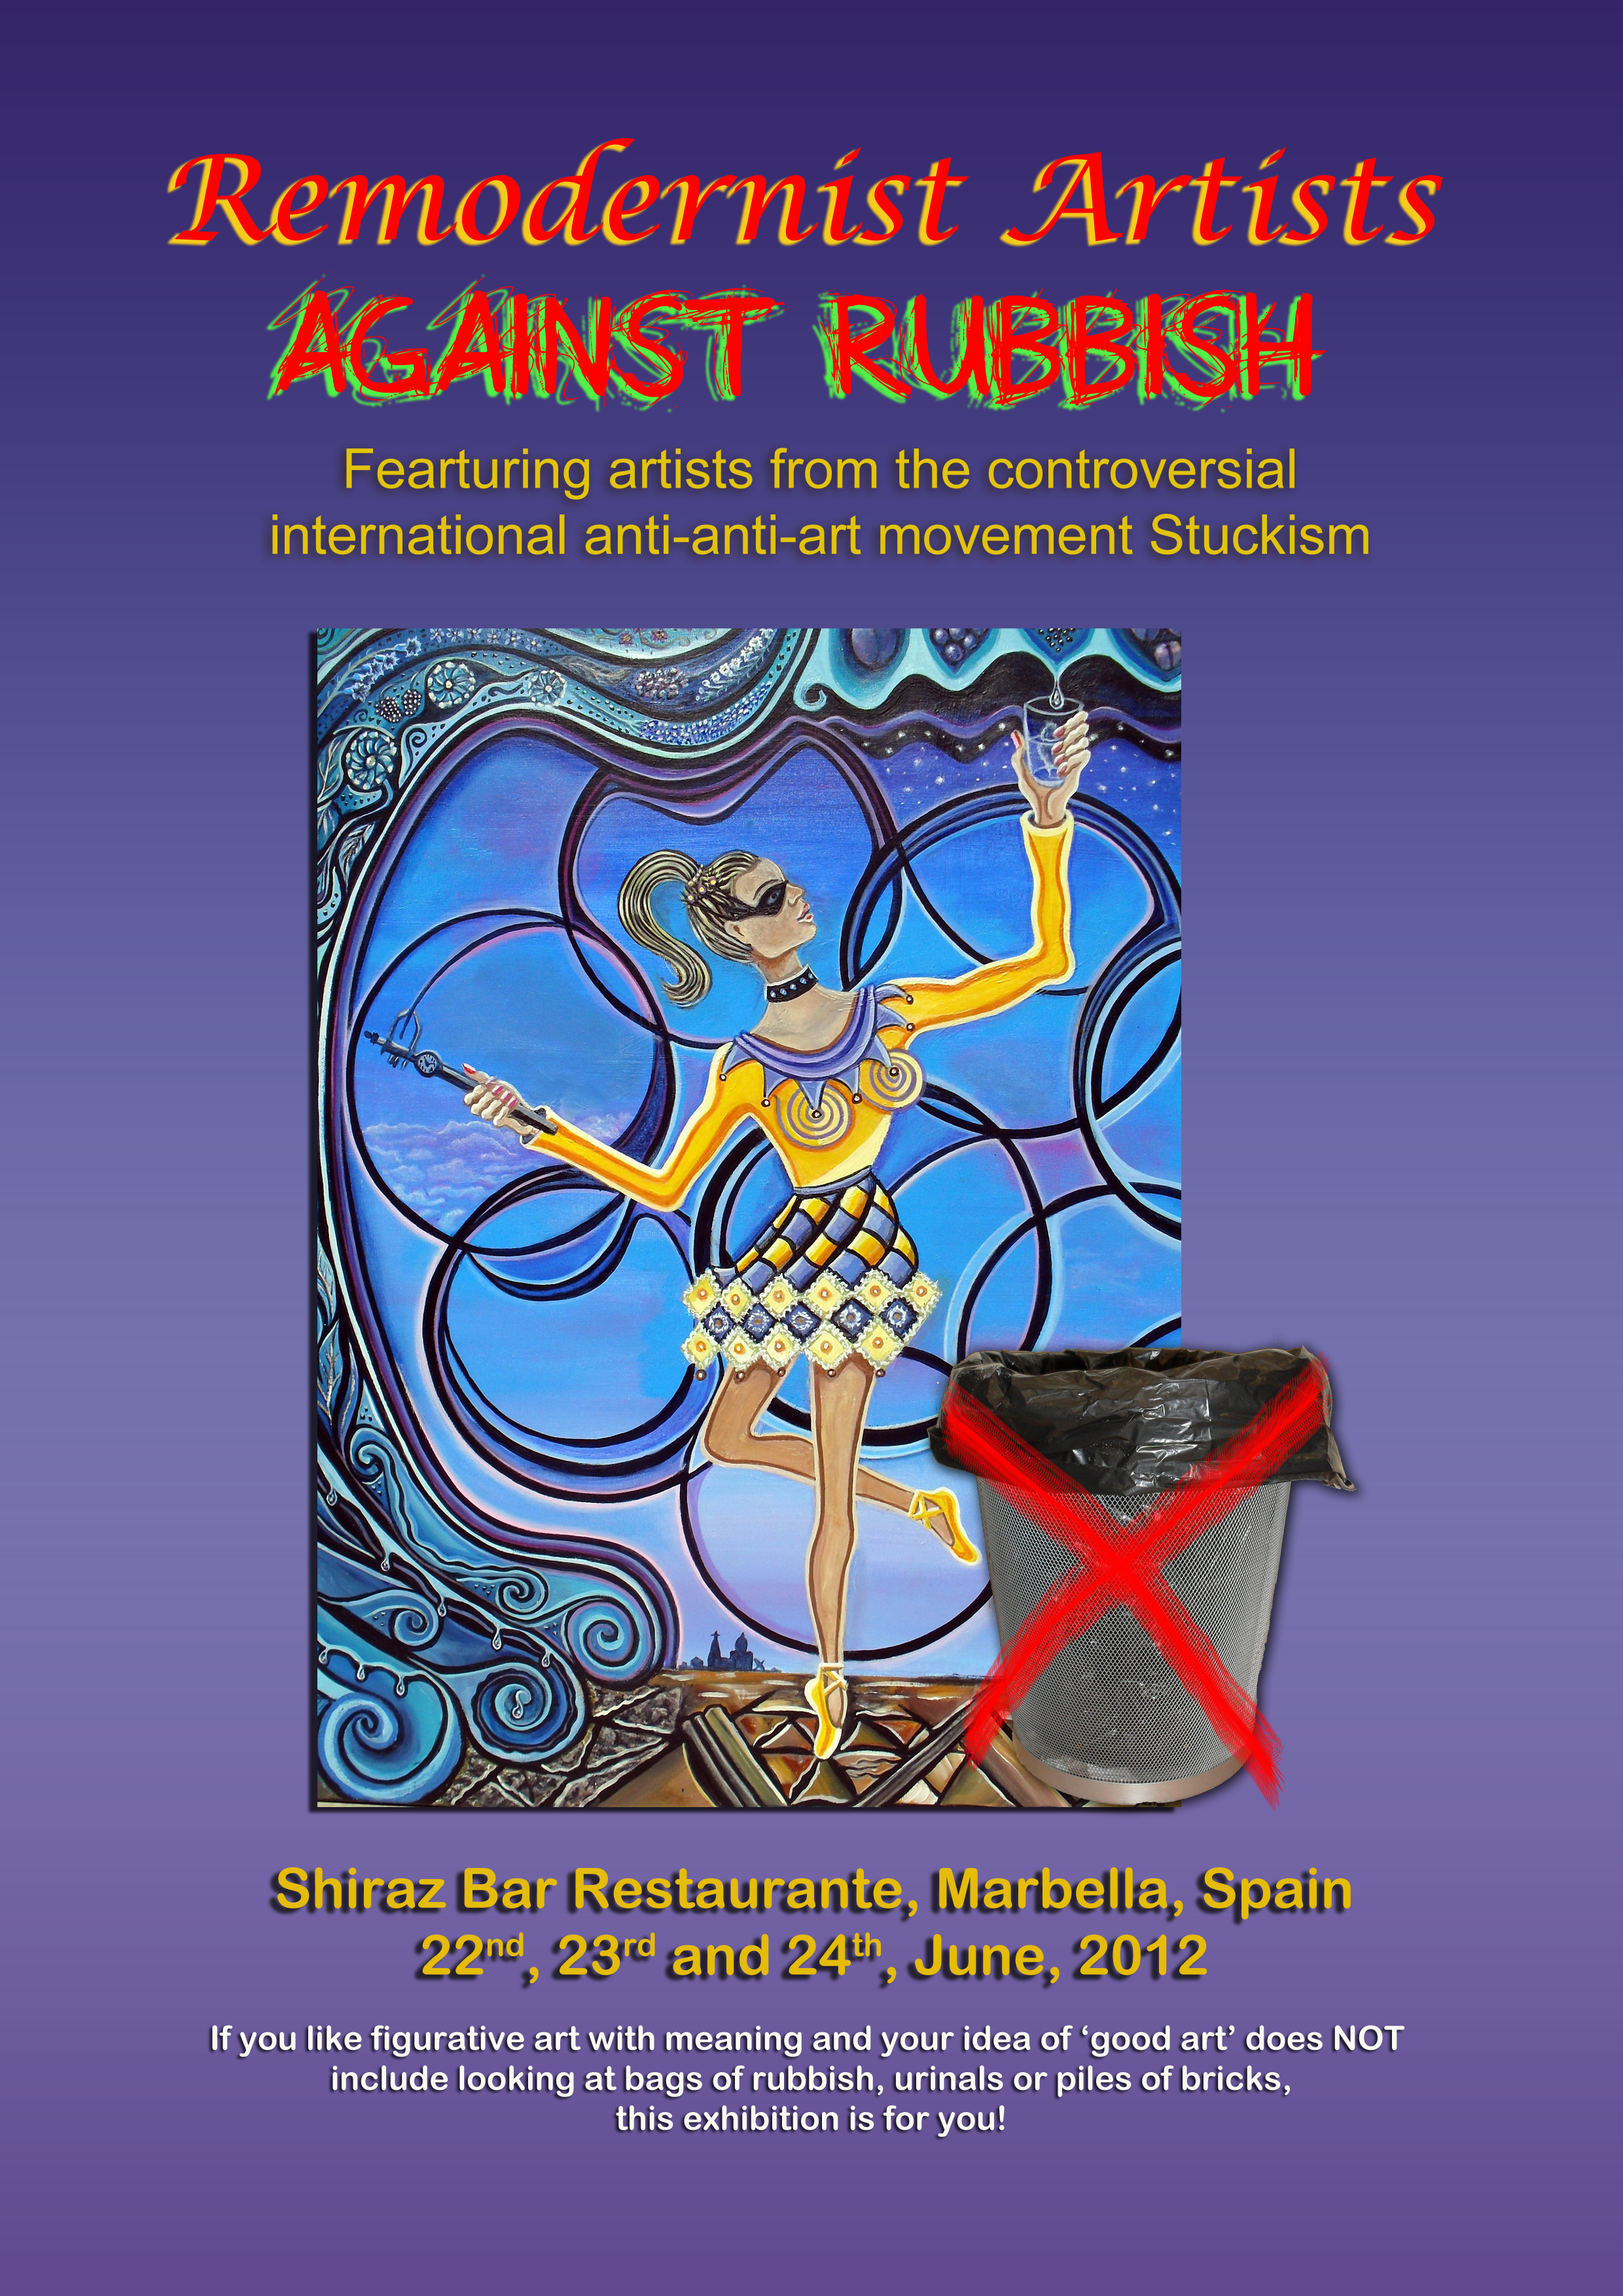 The 'Remodernist Artists Against Rubbish Exhibition', in Marbella, has now finished.